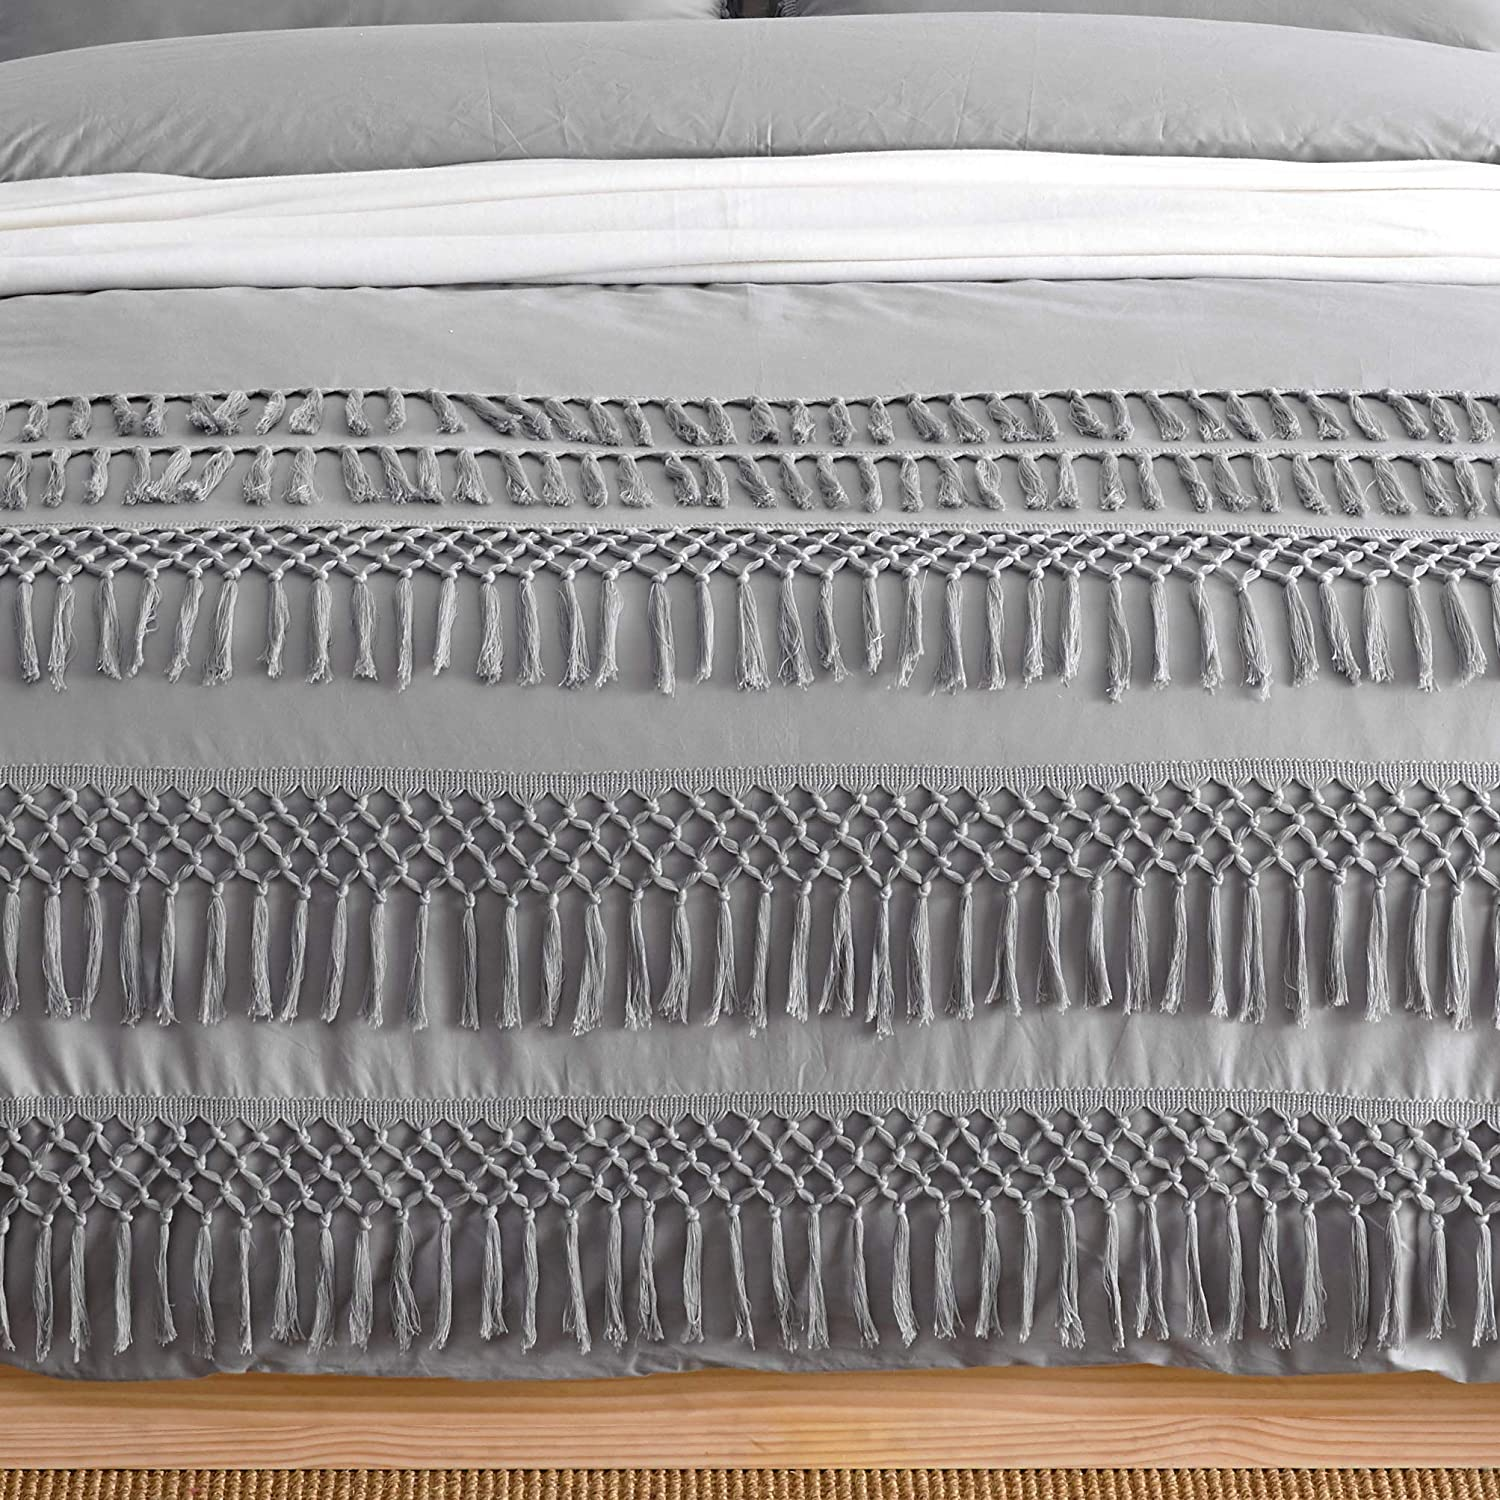 KB /& Me Boho Chic Bohemian Grey Macrame Tassel Duvet Comforter Cover and Sham 3 pc Full//Queen Size Bed Bedding Set Solid Light Gray Cotton Fringe Textured Tufted Minimalist Farmhouse Indie Dorm Teen